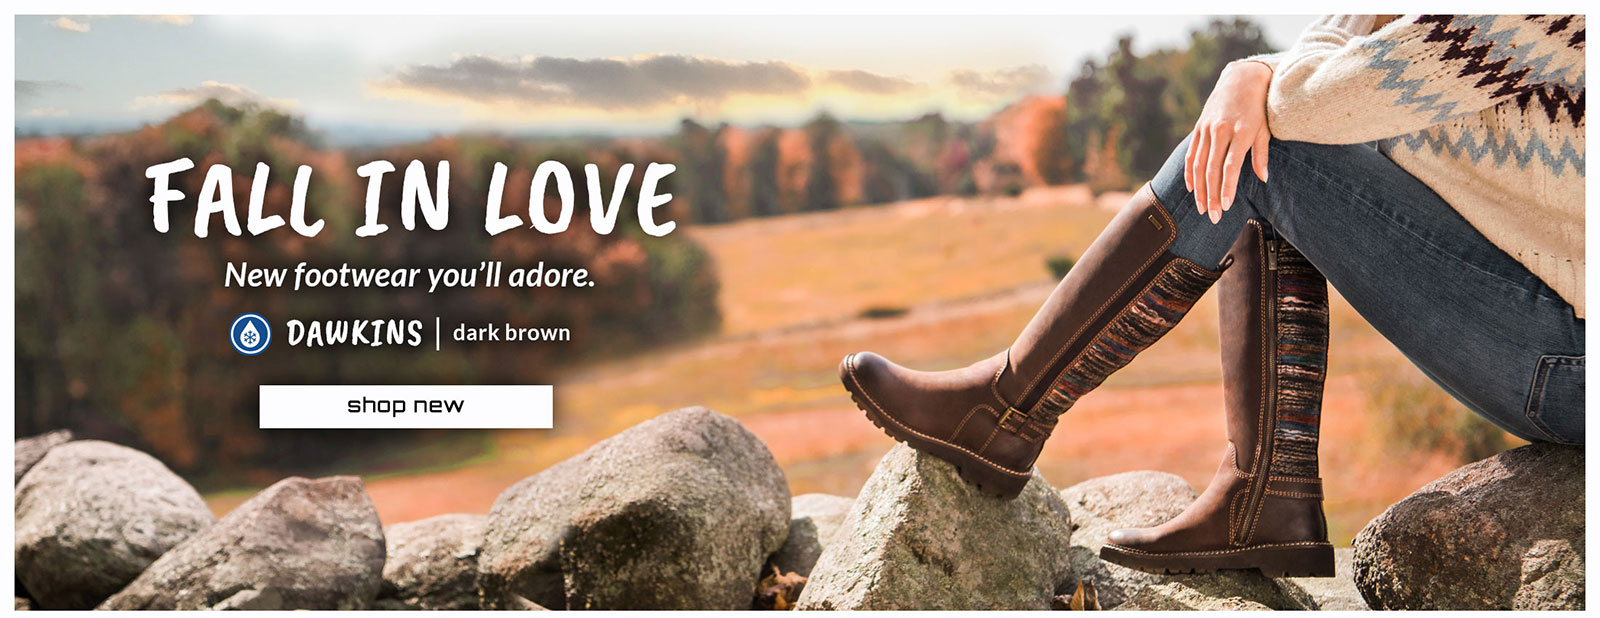 Fall in love. New footwear you'll adore. Featured style: All-Weather Dawkins in dark brown. Shop New.